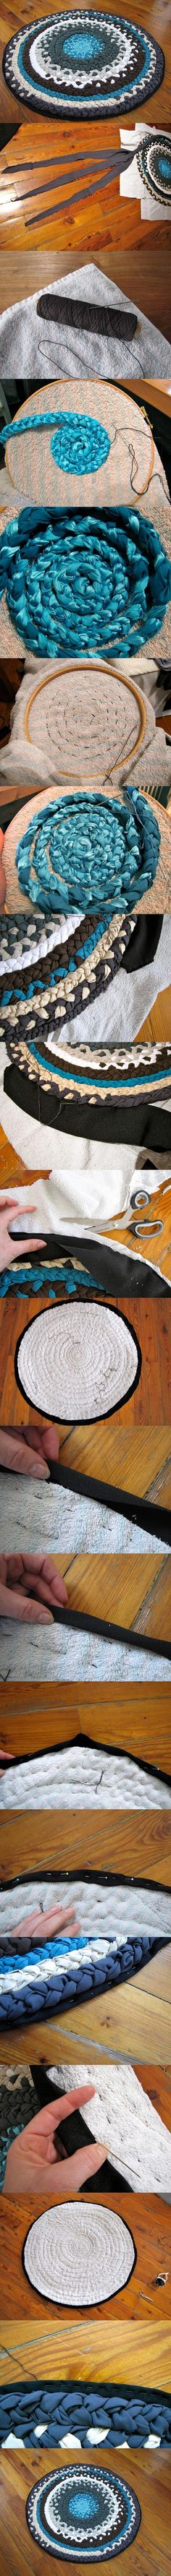 DIY Braided Fabric Rug DIY Projects